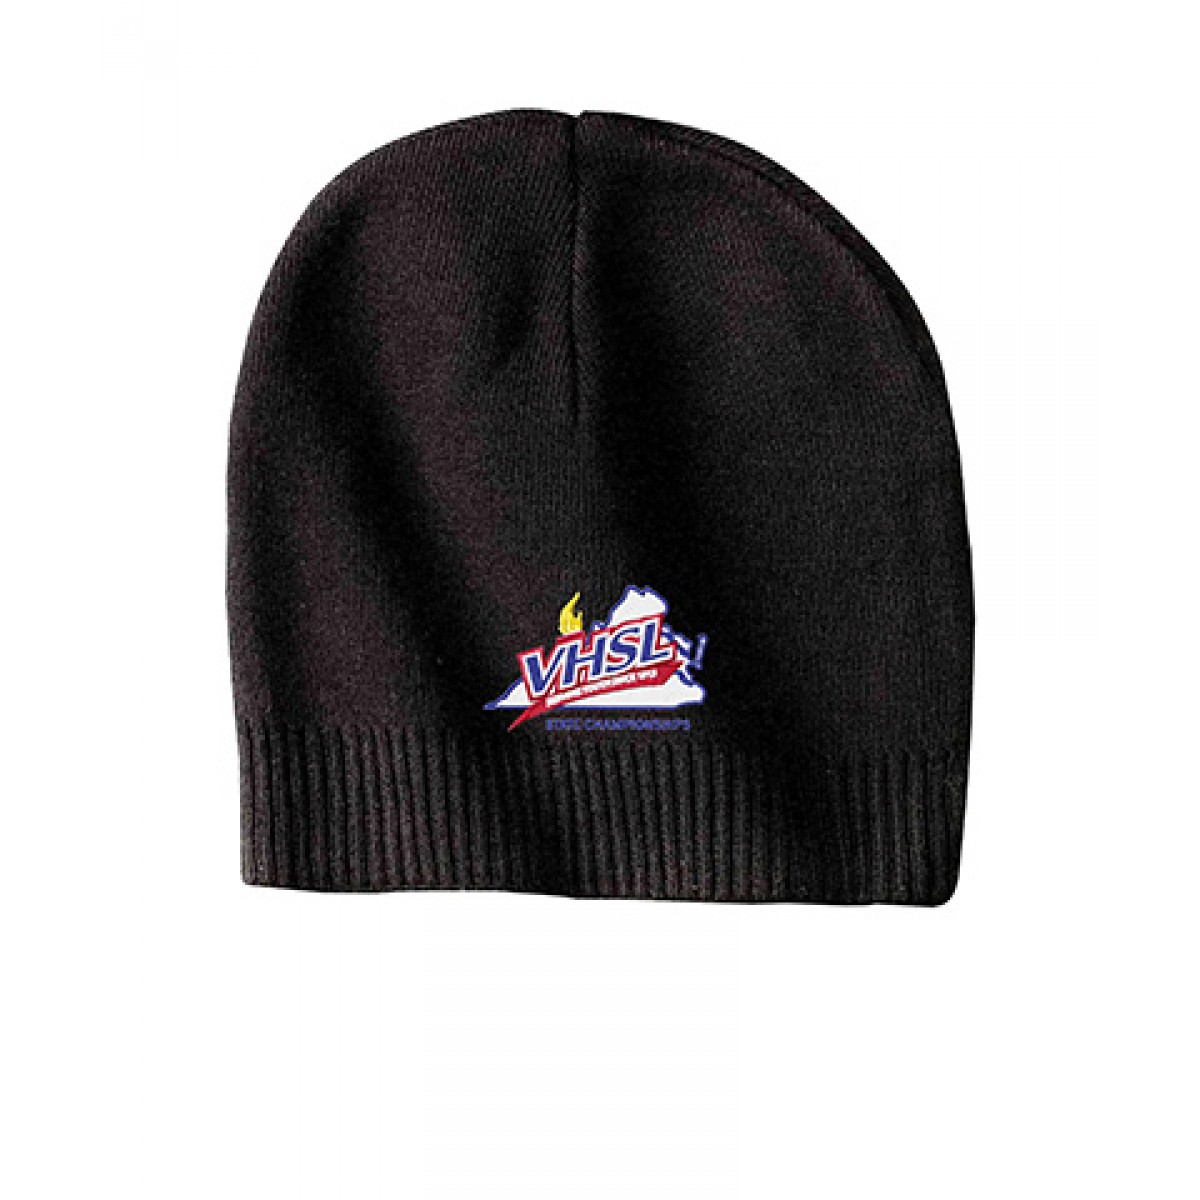 Embroidered 100% Cotton Beanie-Black-OS